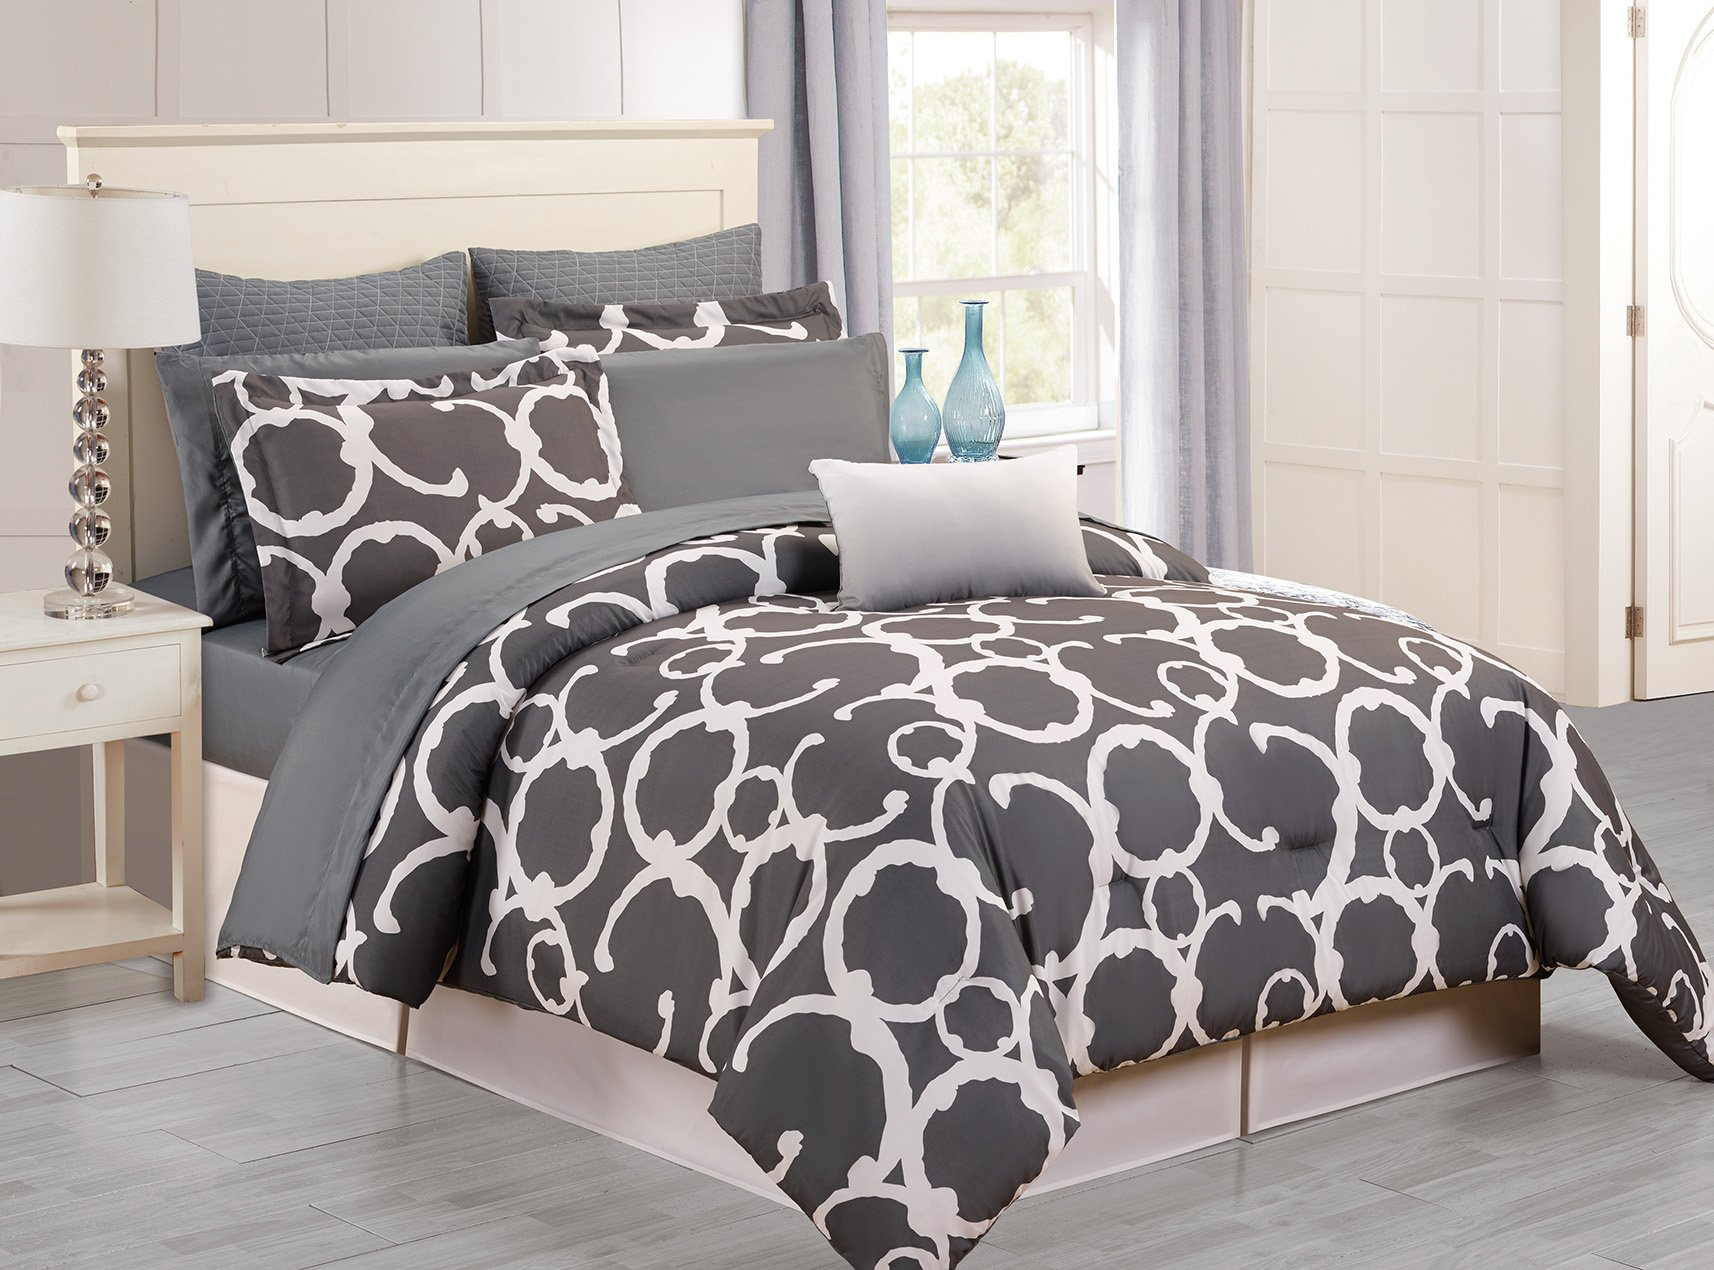 Home Maison -  Rhys Hotel Quality Luxury Comforter Duvet Insert Cover Hypoallergenic | 10 Piece Set | Geometric Collection, | Queen Size | Grey